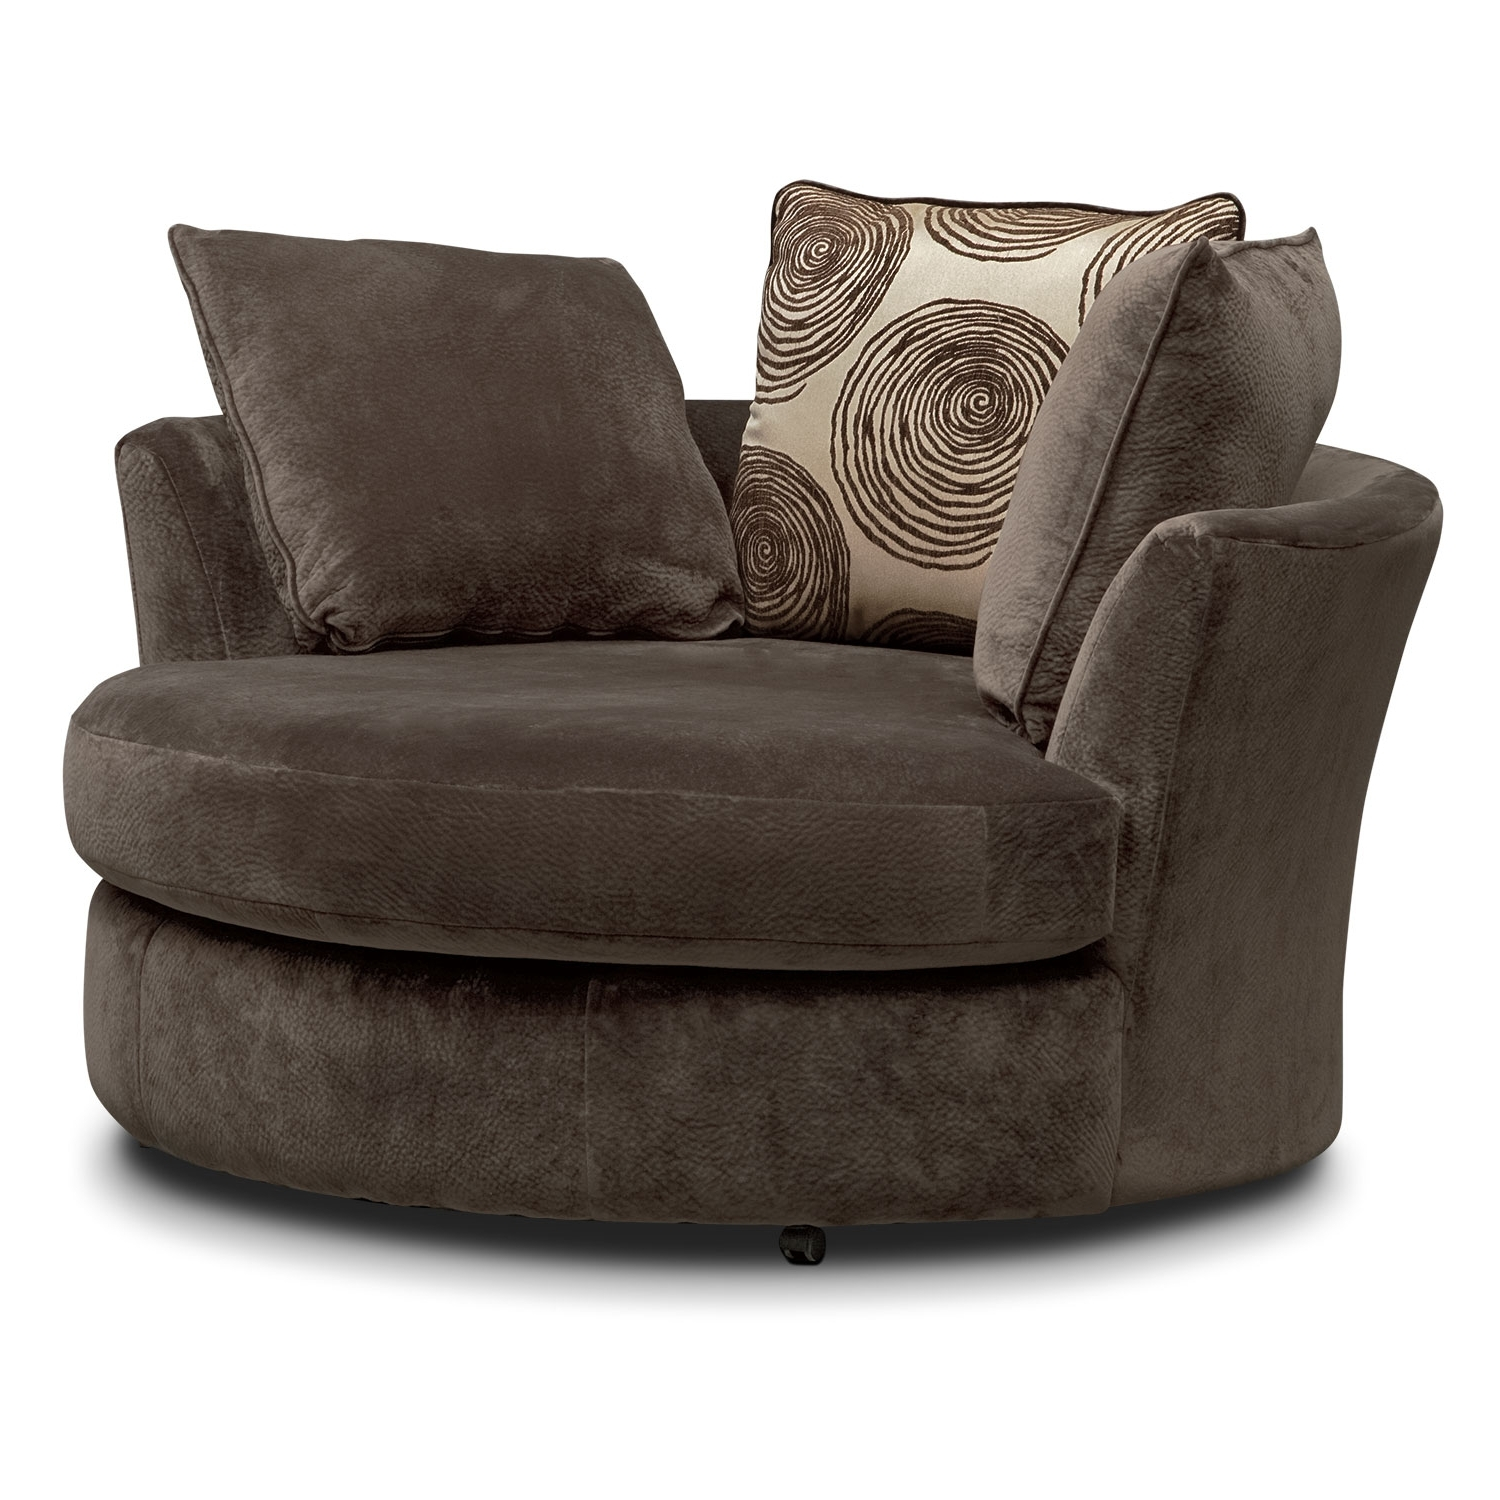 Most Popular Cordelle 2 Piece Right Facing Chaise Sectional And Swivel Chair Inside Value City Furniture Chaises (View 14 of 15)